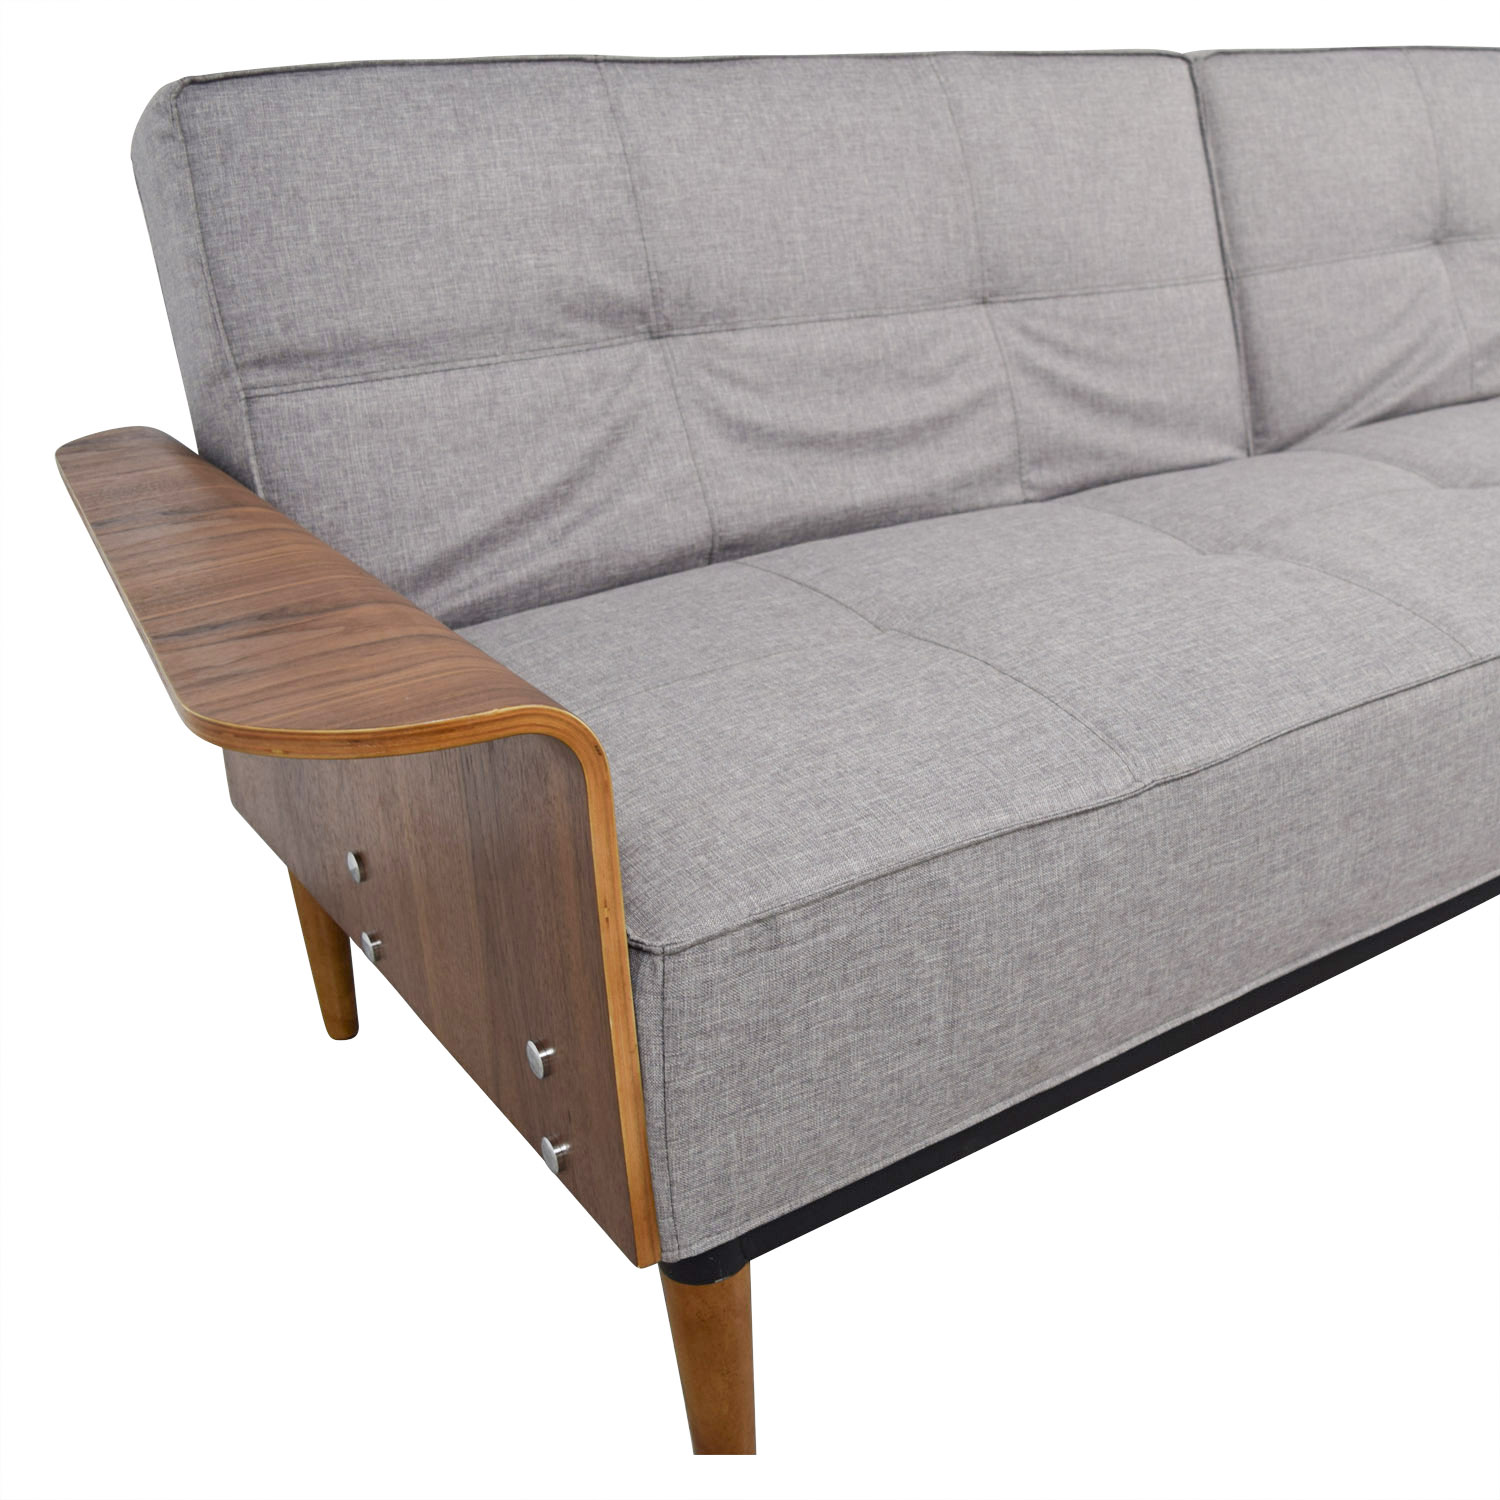 shop Inmod Bjorg Tufted Light Grey Sofabed Inmod